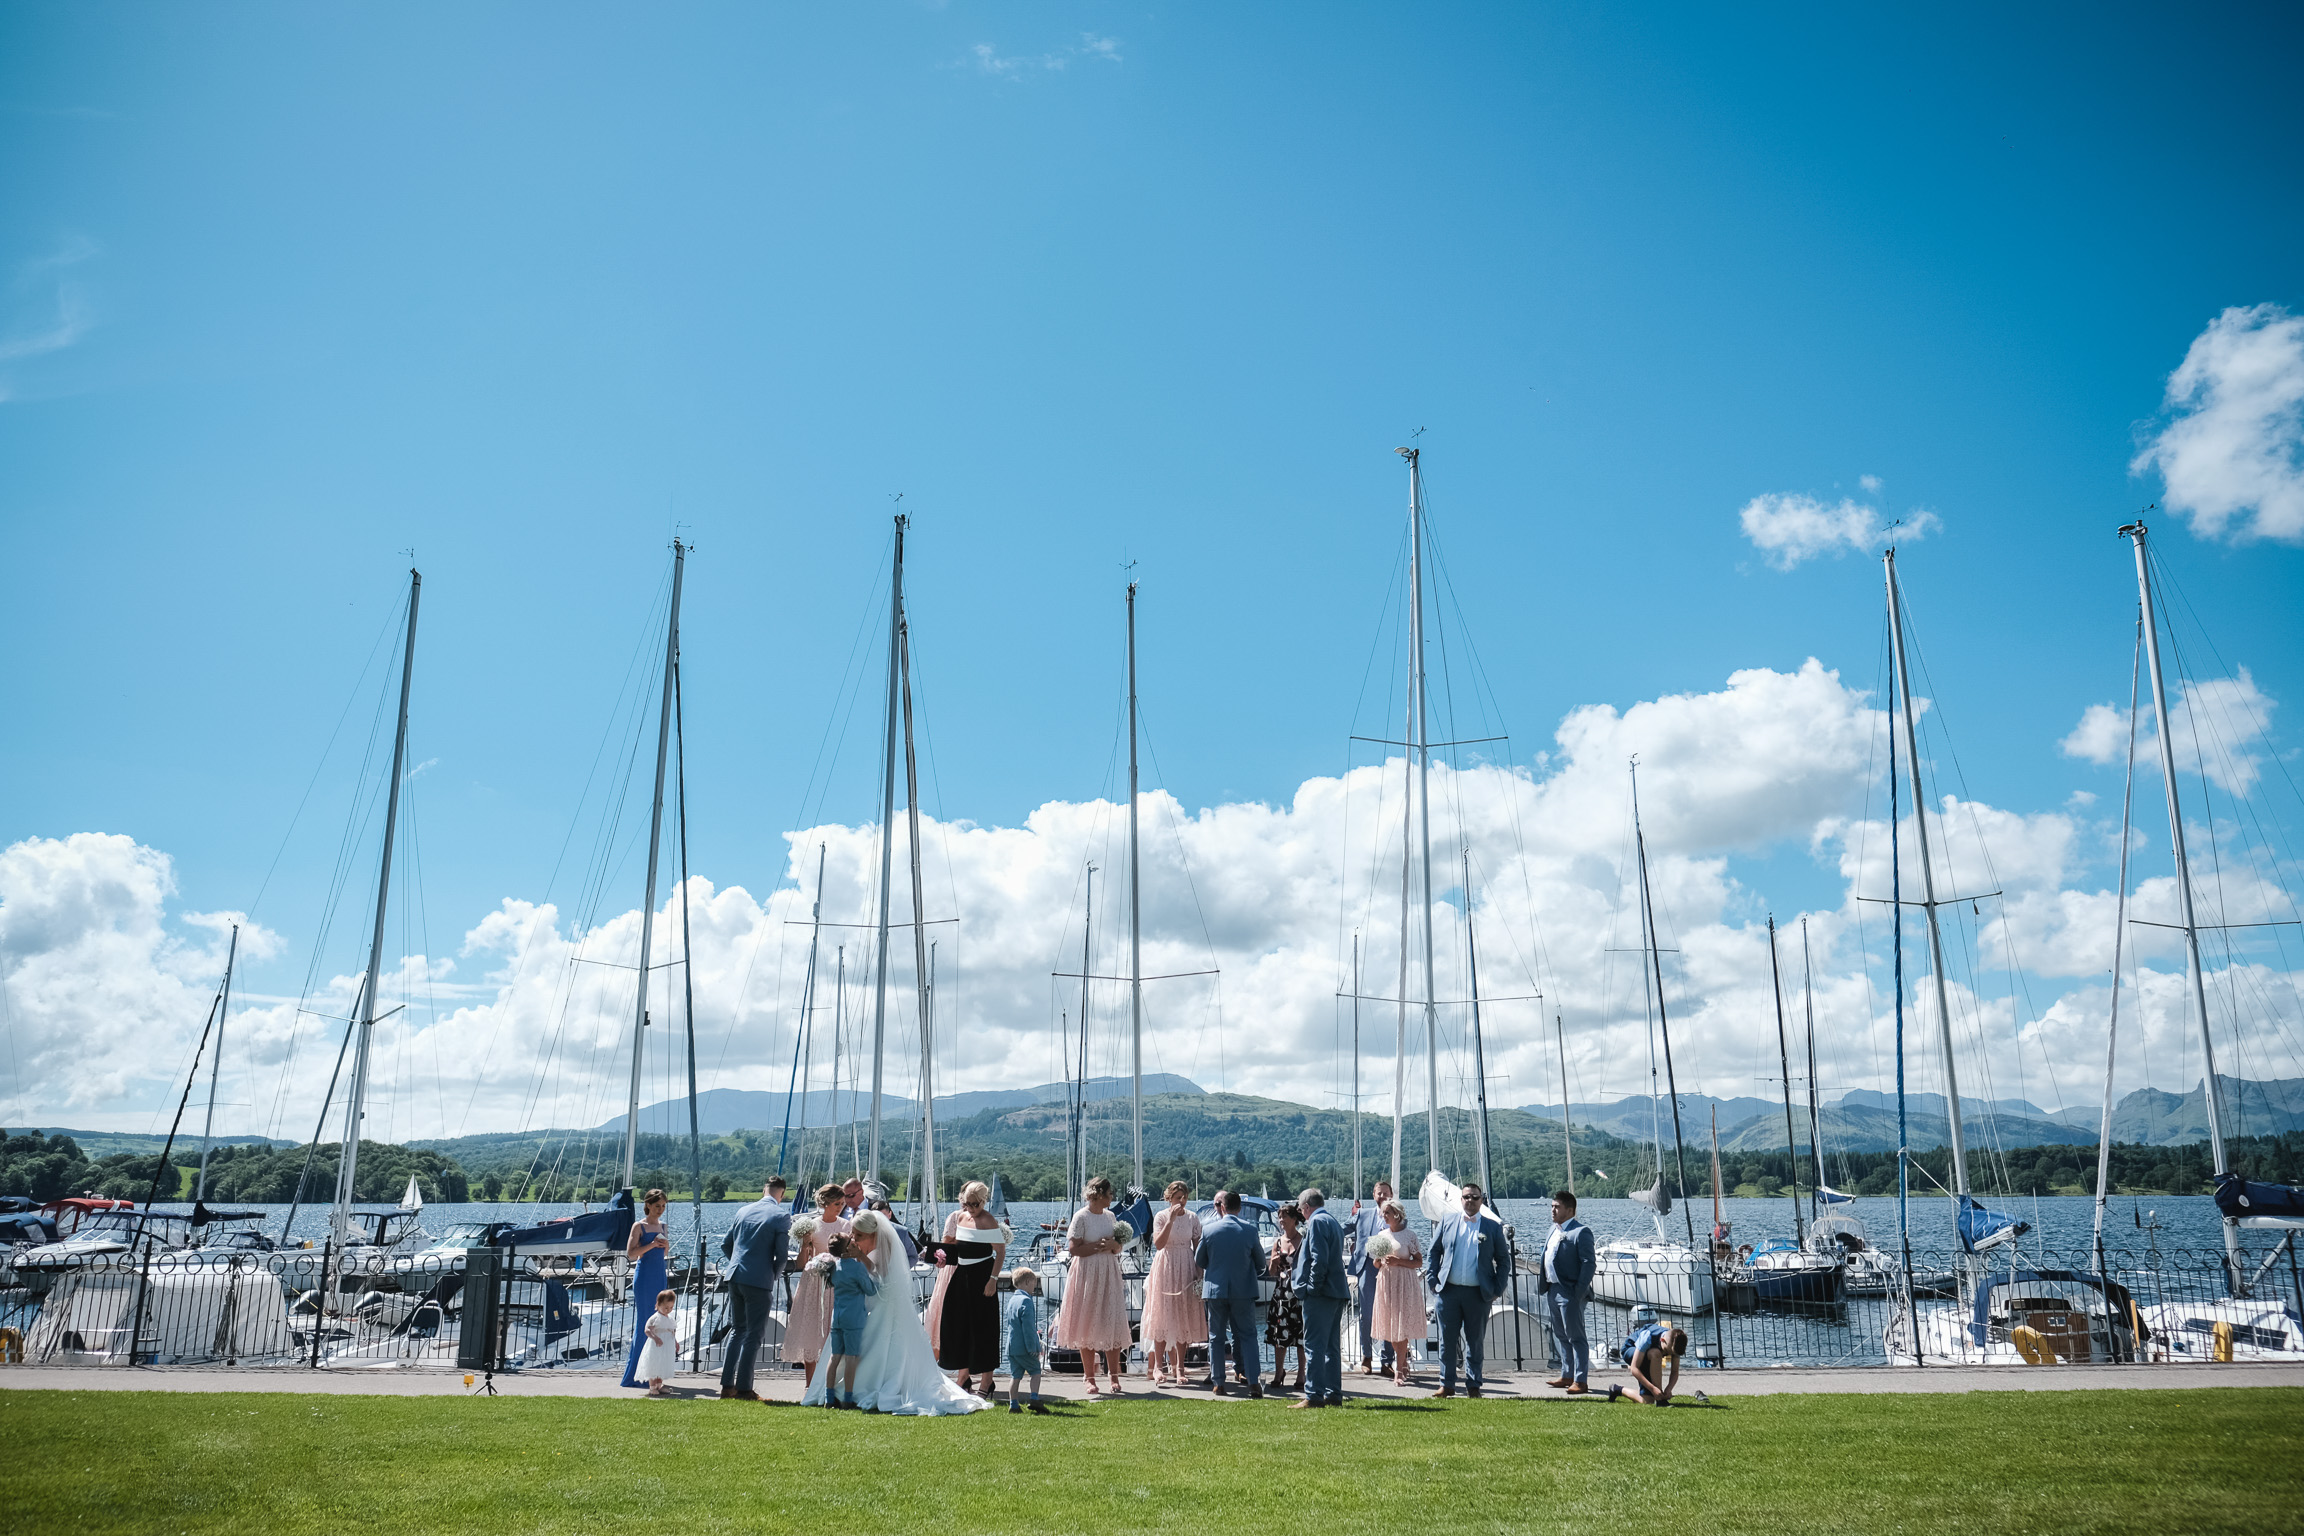 Low wood bay wedding photographer in widermere documentry wedding photography north west cumbria (59 of 131).jpg